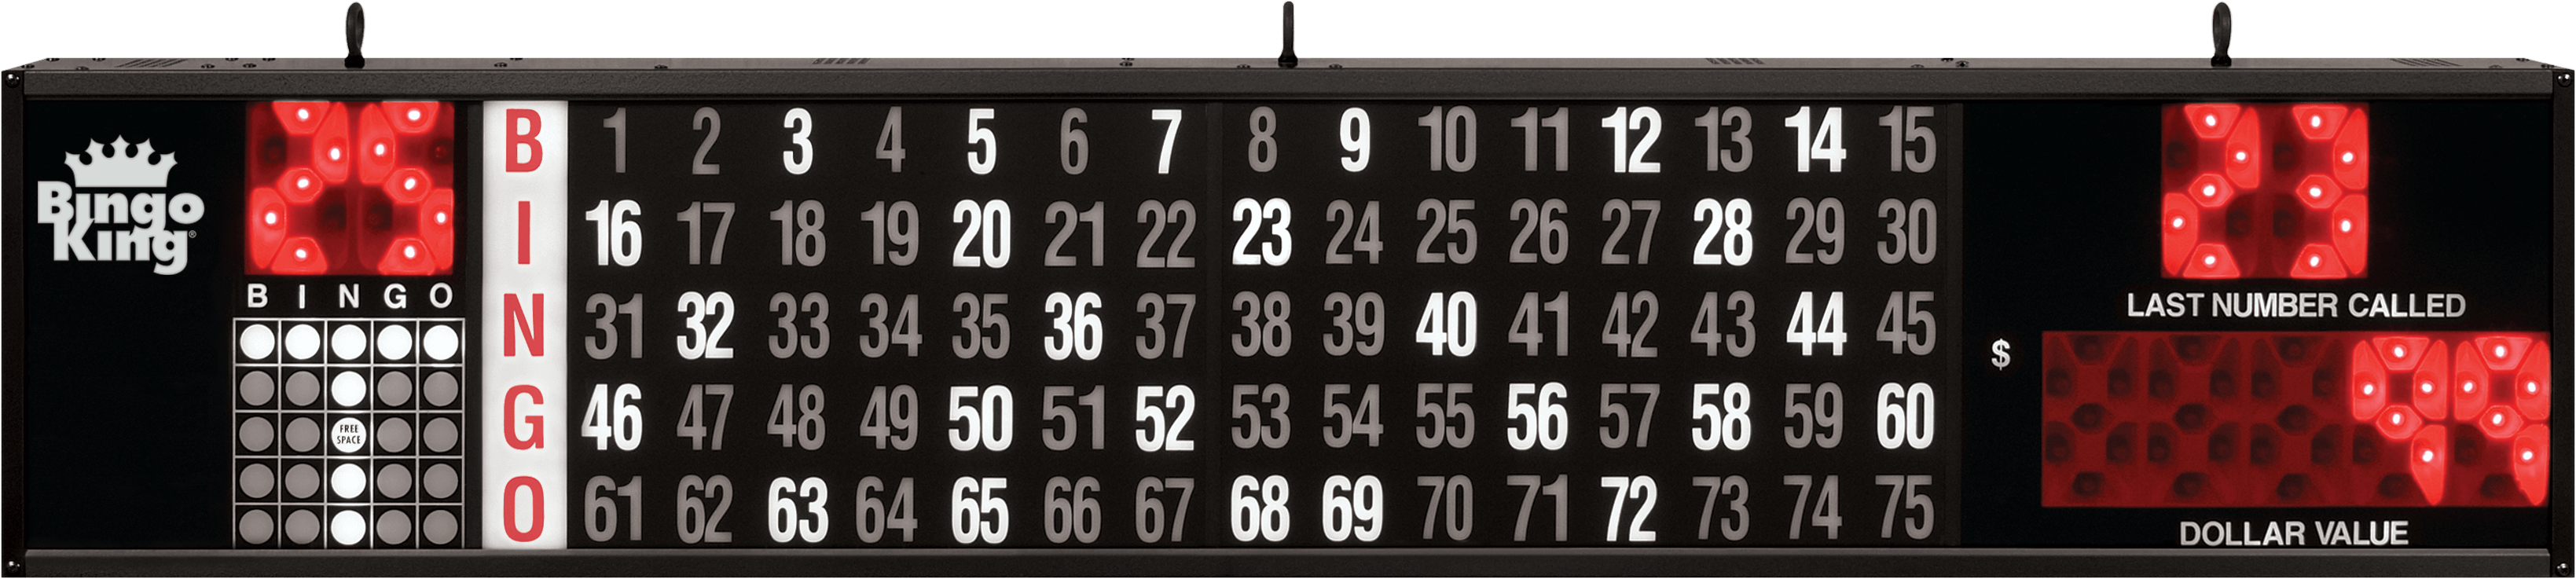 Dollar Value Flashboard